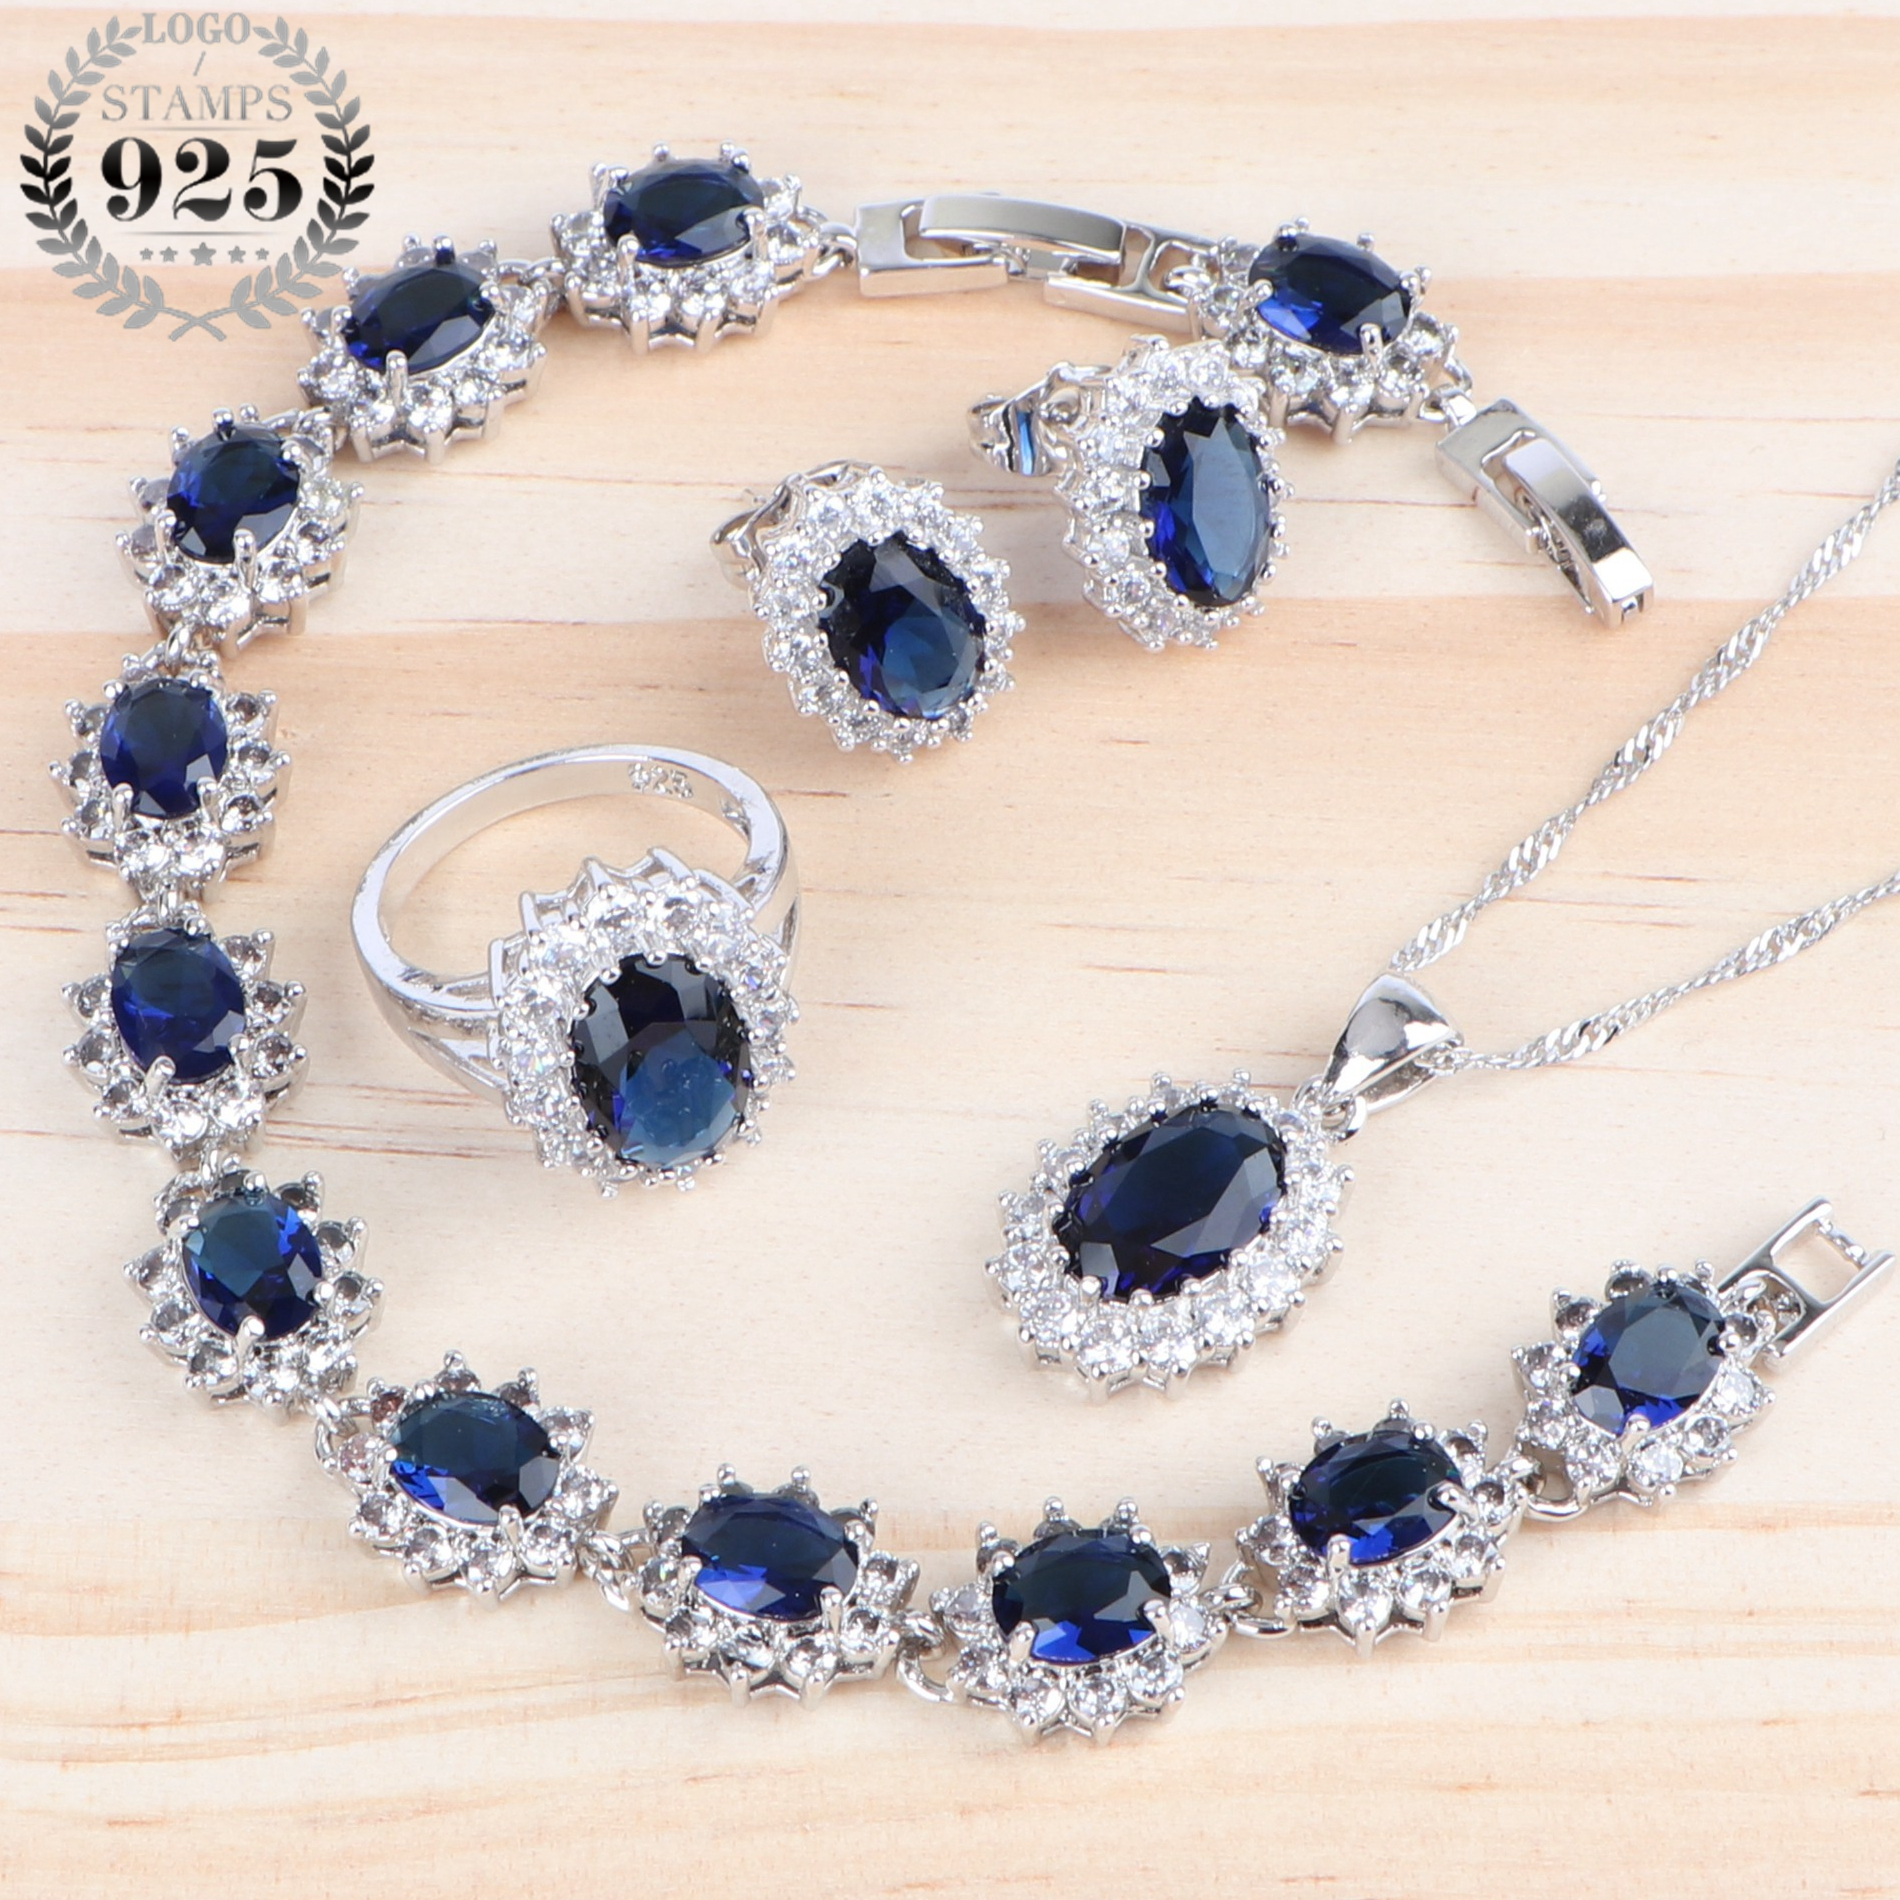 Wedding Necklace Jewelry Sets Bridal Zirconia Jewellery Silver 925 Rings Women Costume Bracelets/Earrings/Pendant Set Blue Stone